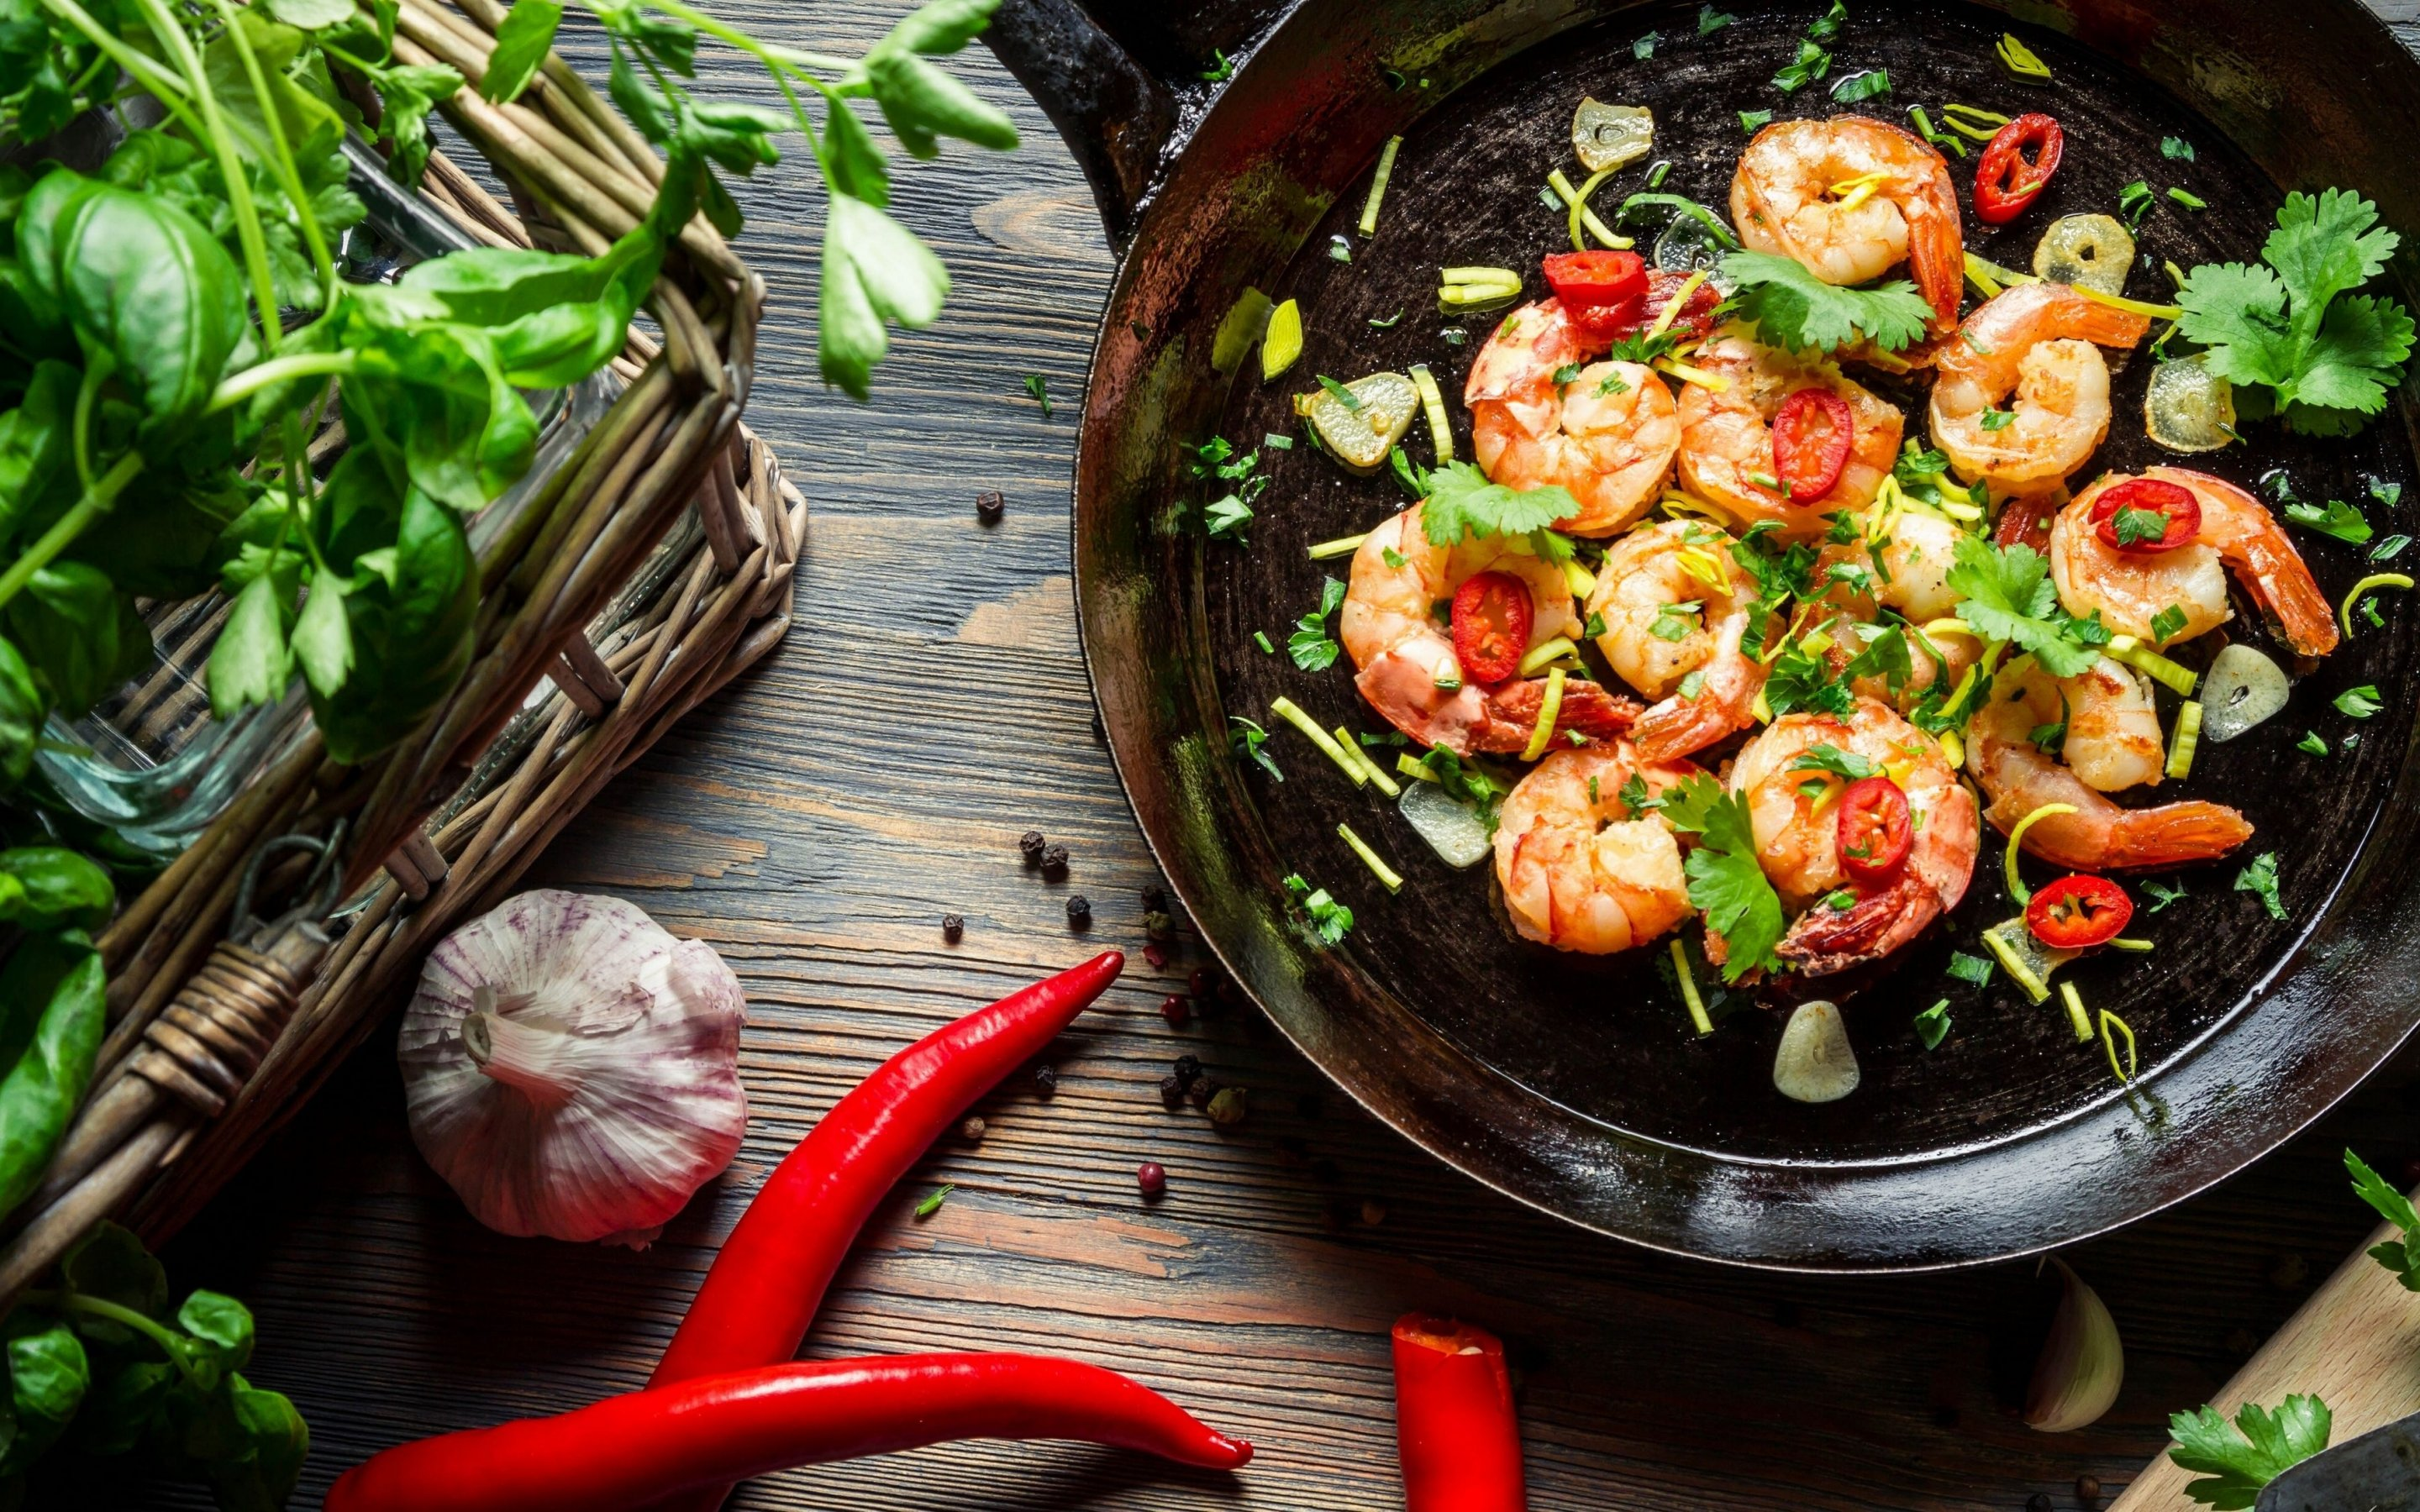 food-shrimp-herbs-woven-basket-pan-chili-garlic-parsley-2880x1800